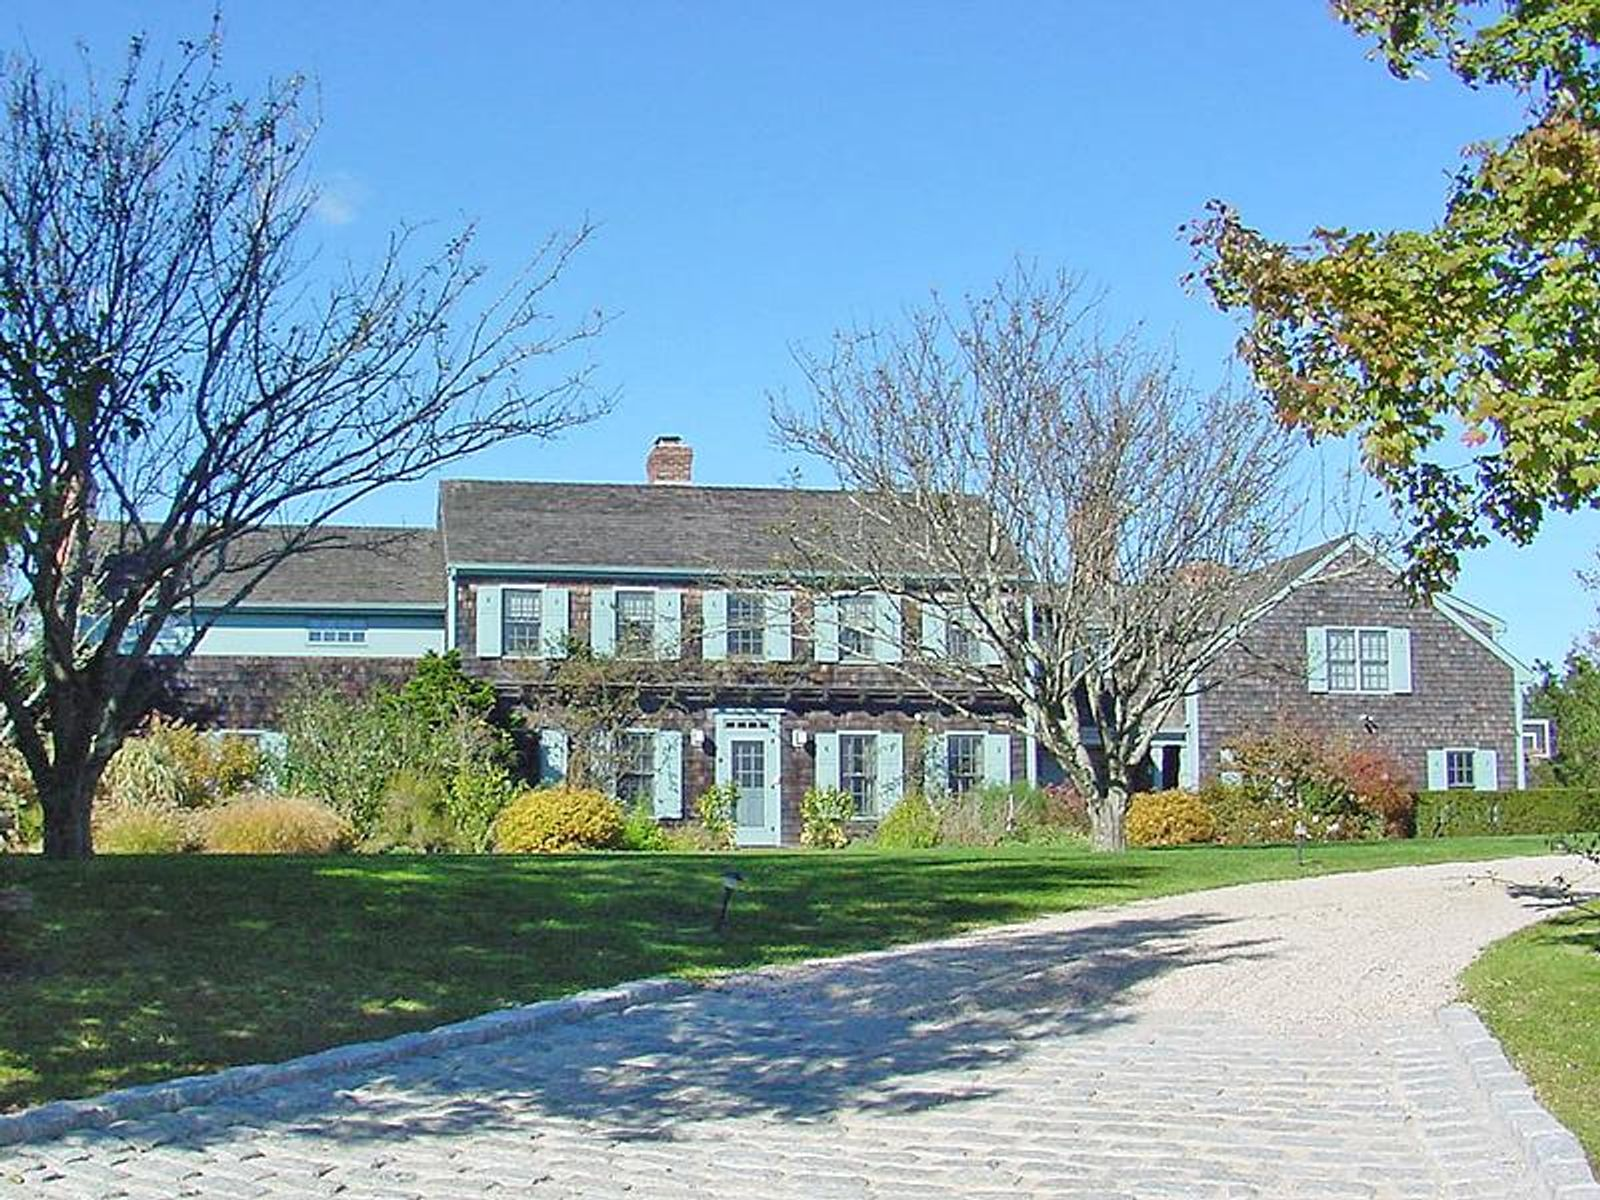 Sagaponack South, Sagaponack NY Single Family Home - Hamptons Real Estate